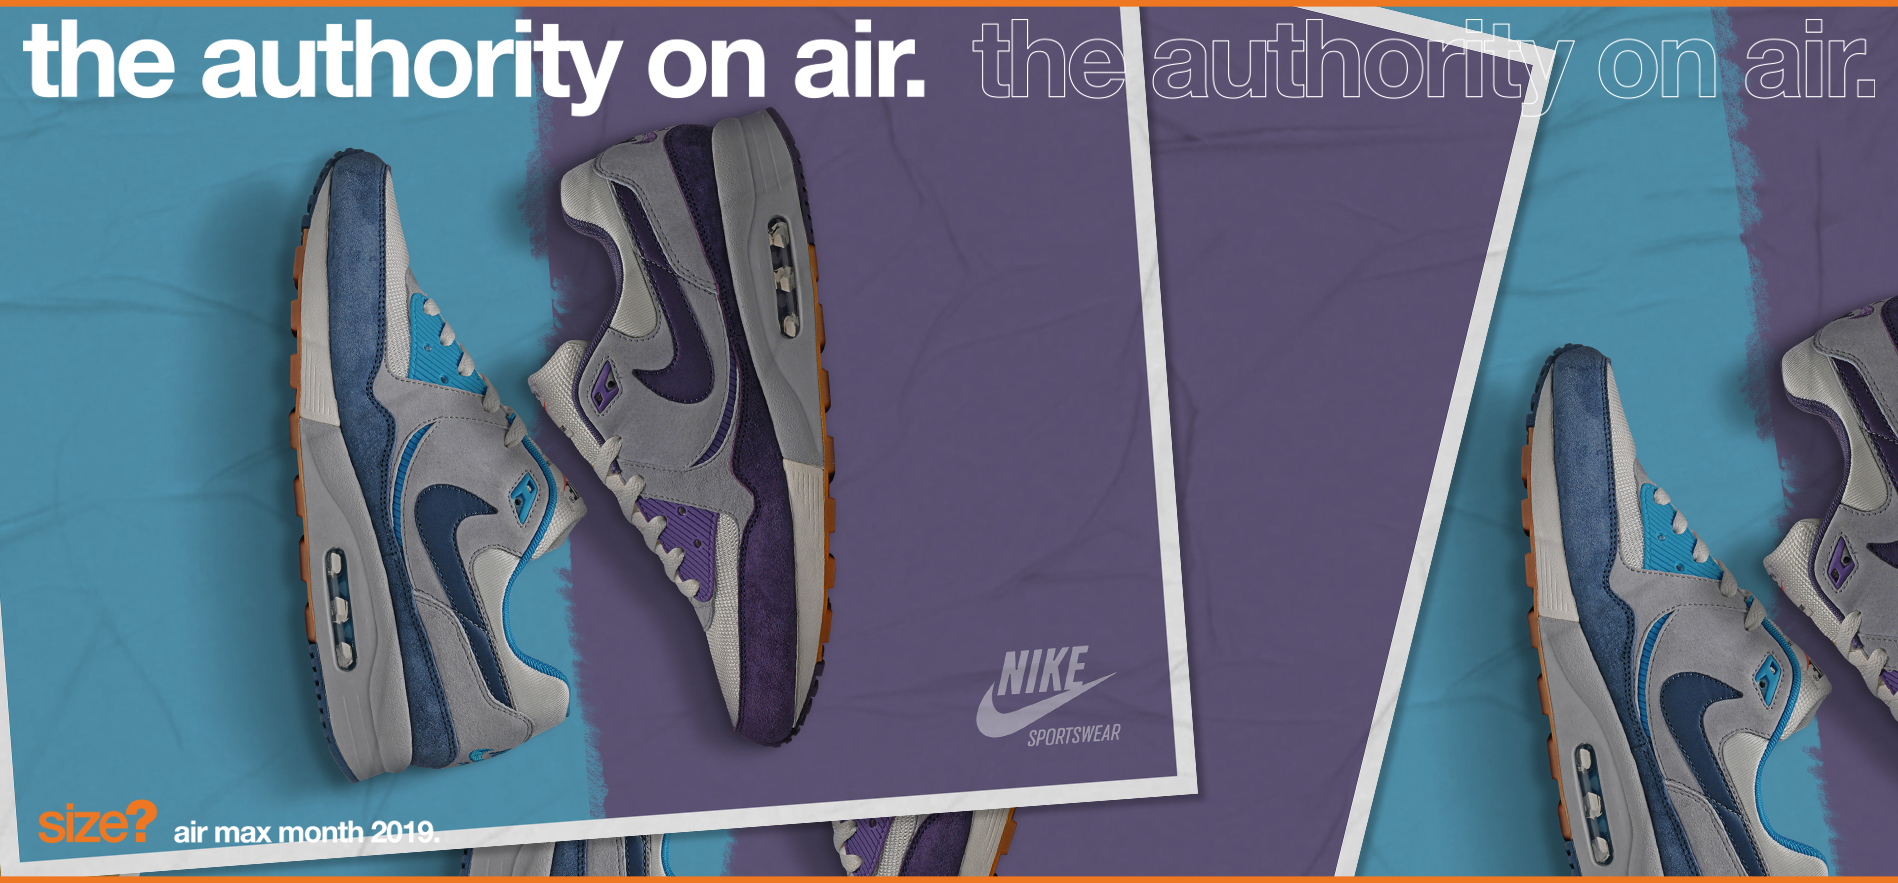 the authority on air: Air Max Light 'Easter Edition'